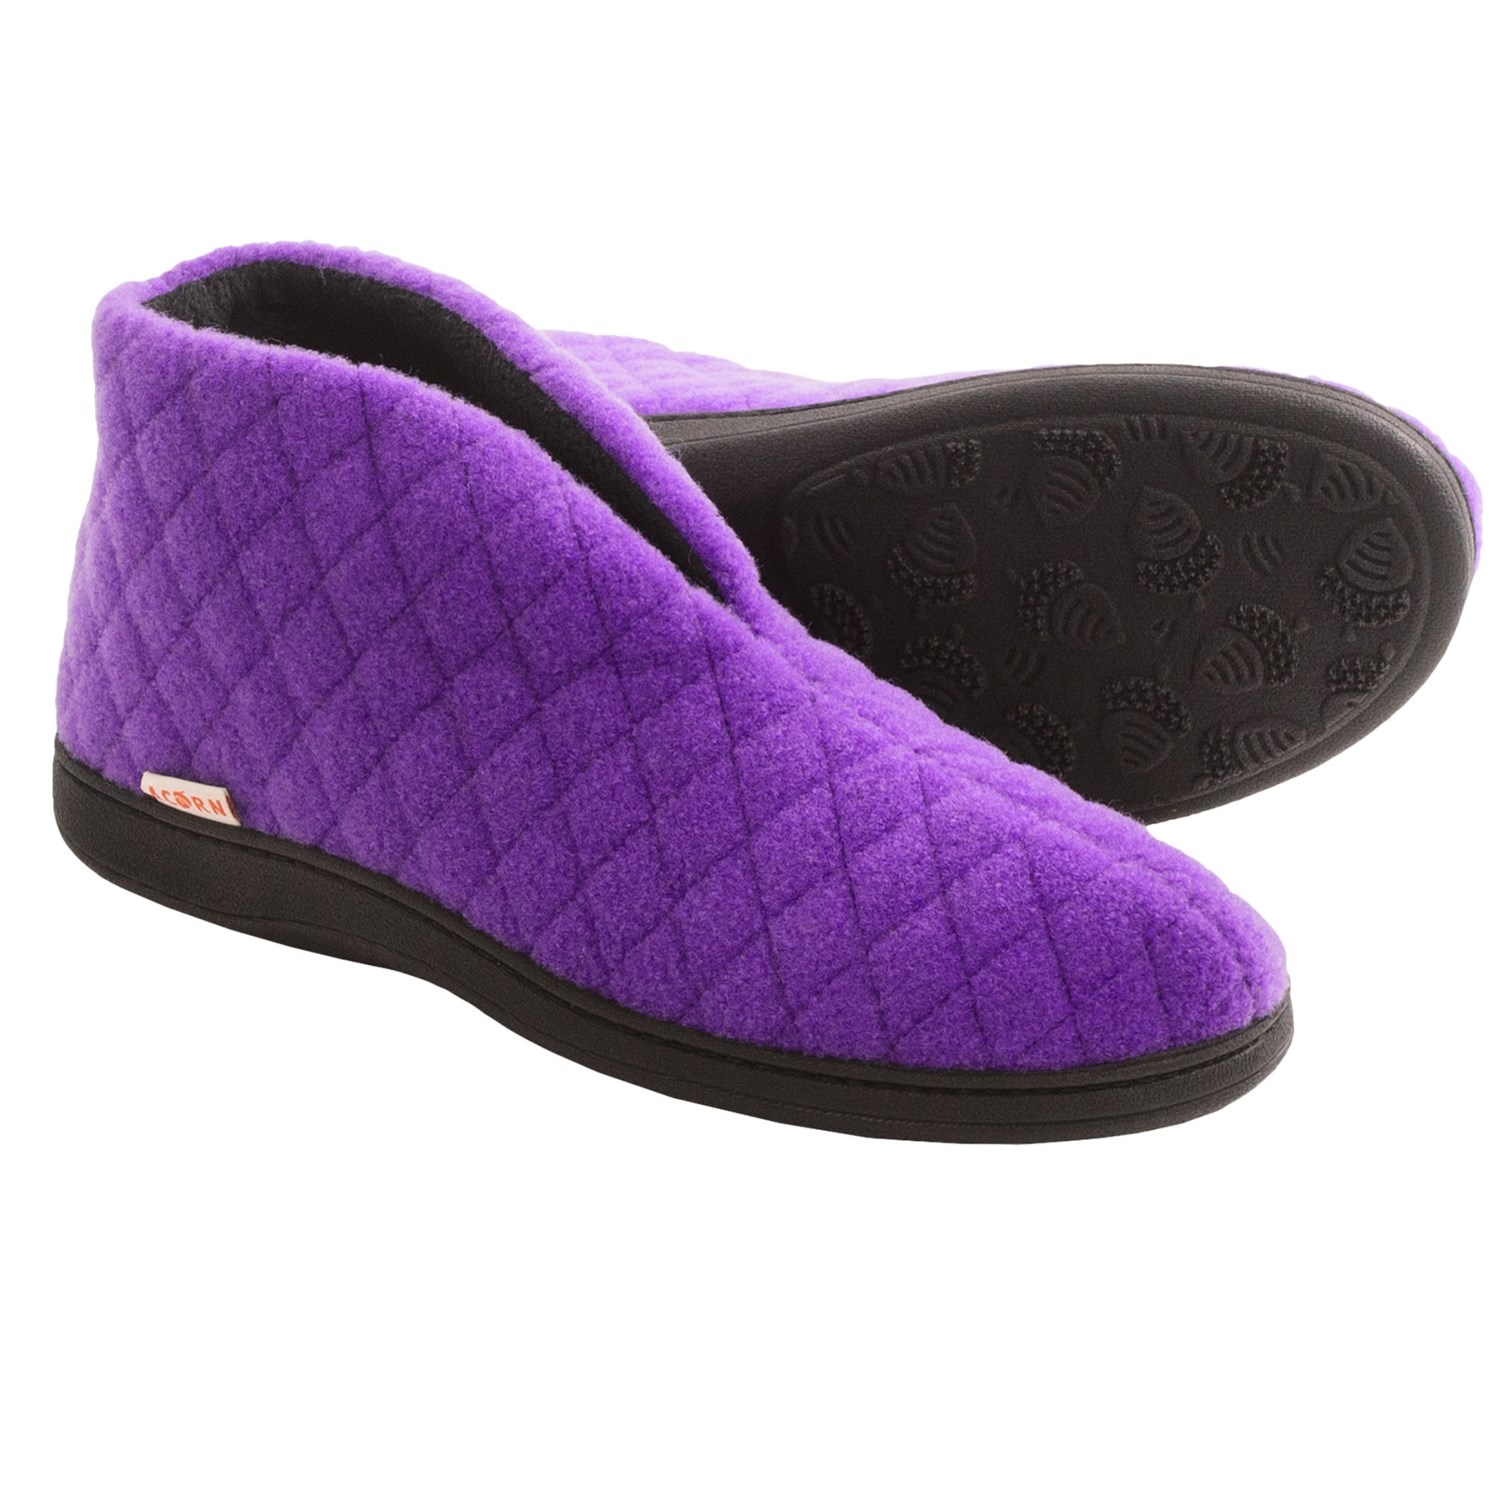 Bootie Slipper 28 Images Moshulu Bo Navy Spotted Bootie Slipper Marshall Shoes Dearfoams